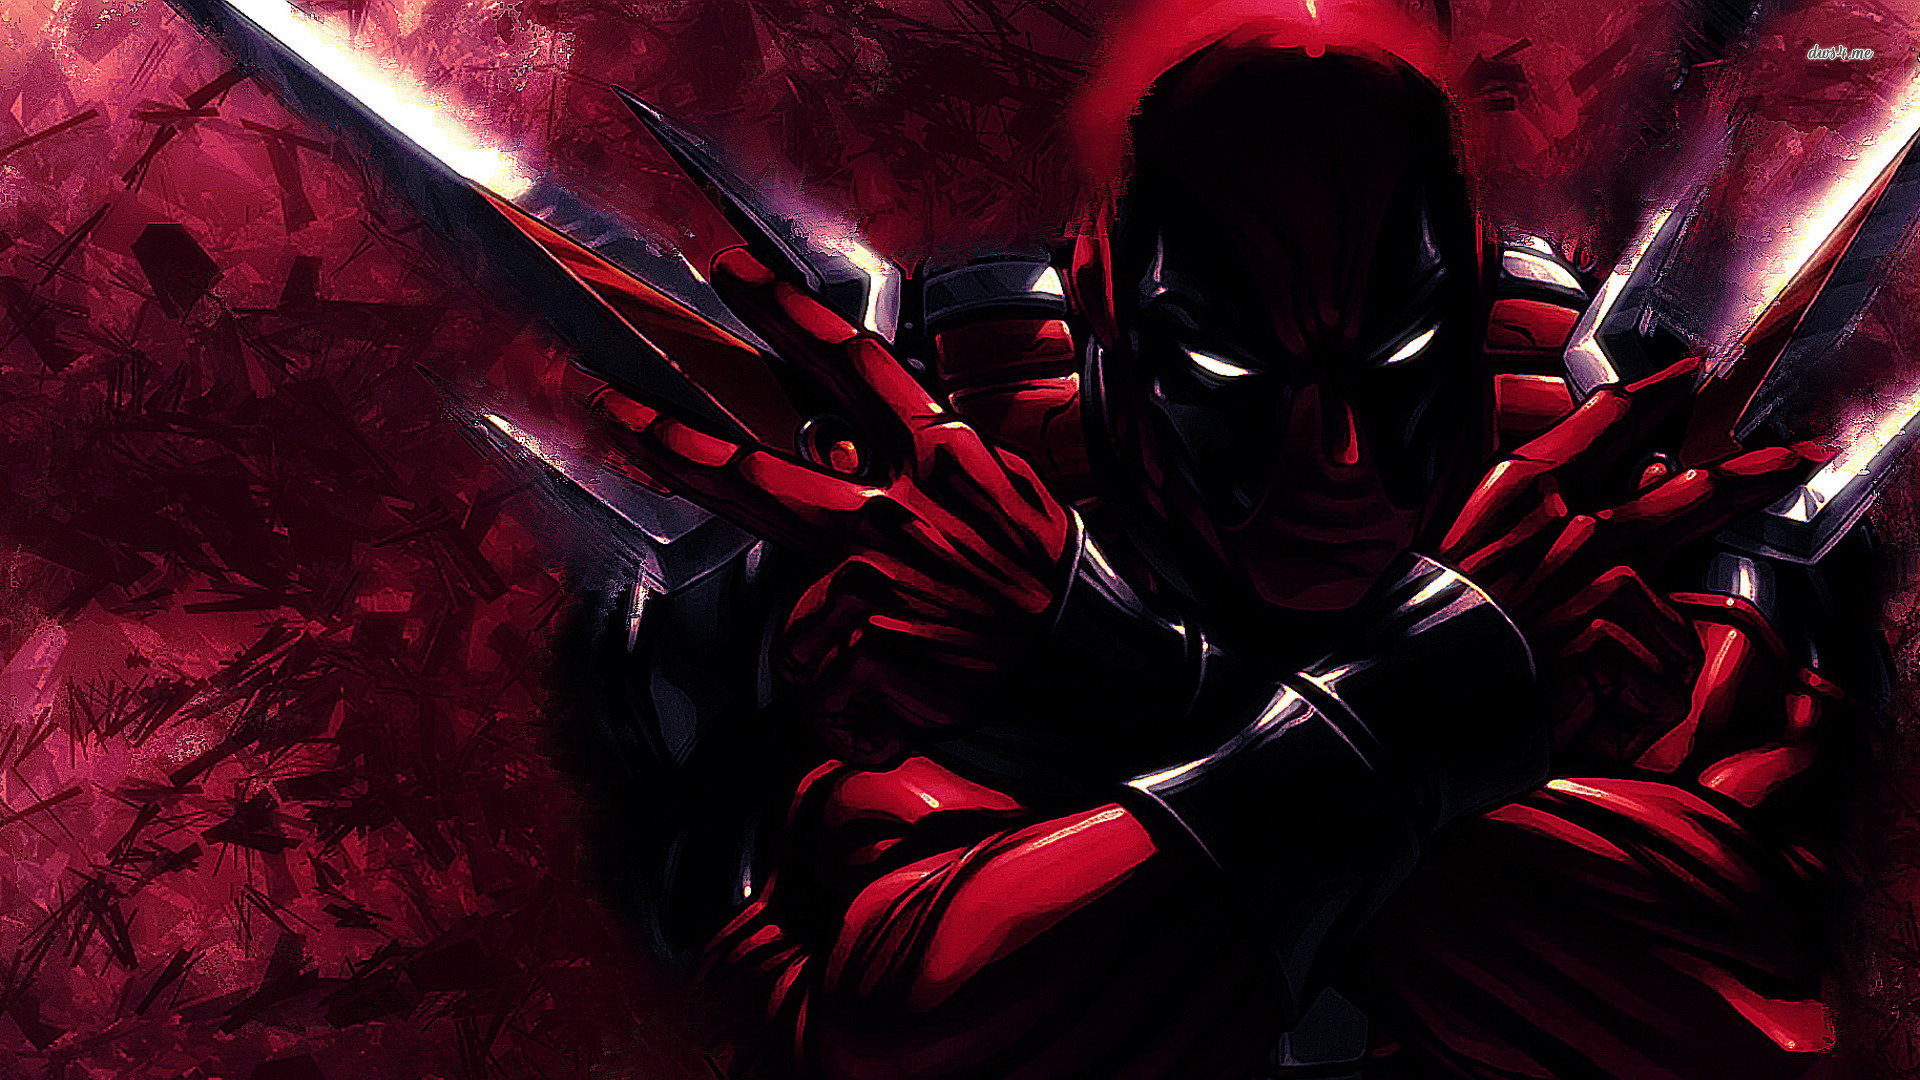 The 'Deadpool' Movie is Still Alive According to X-Men Producer!